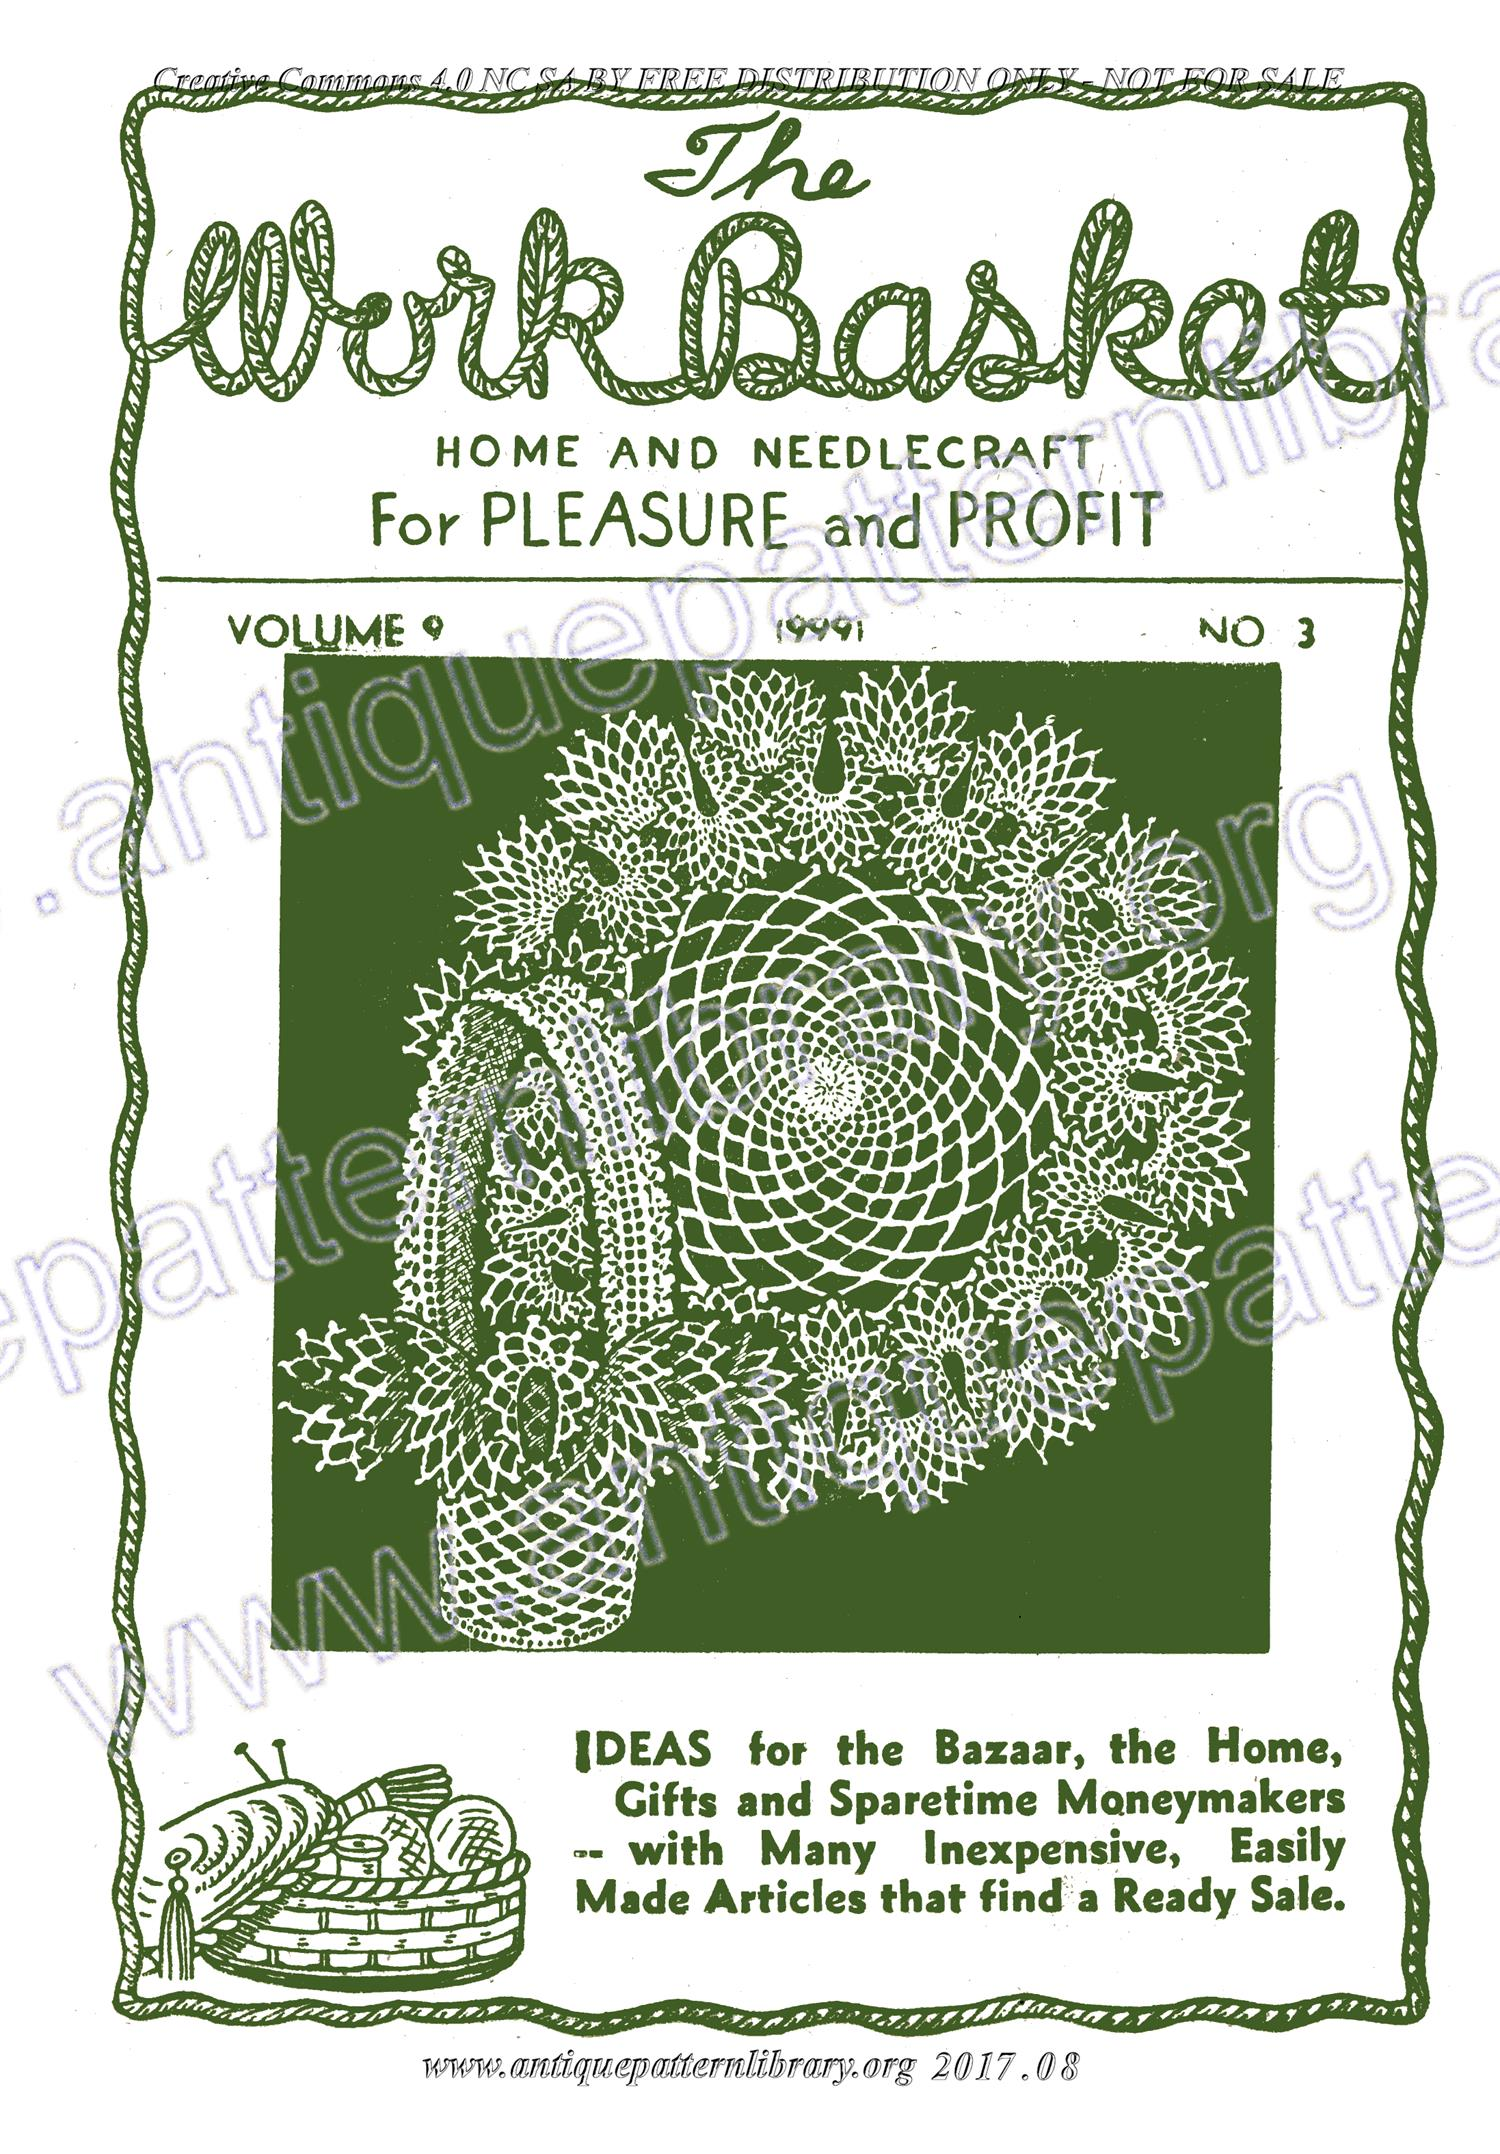 H-WB001 The Workbasket Vol. 9 No. 3